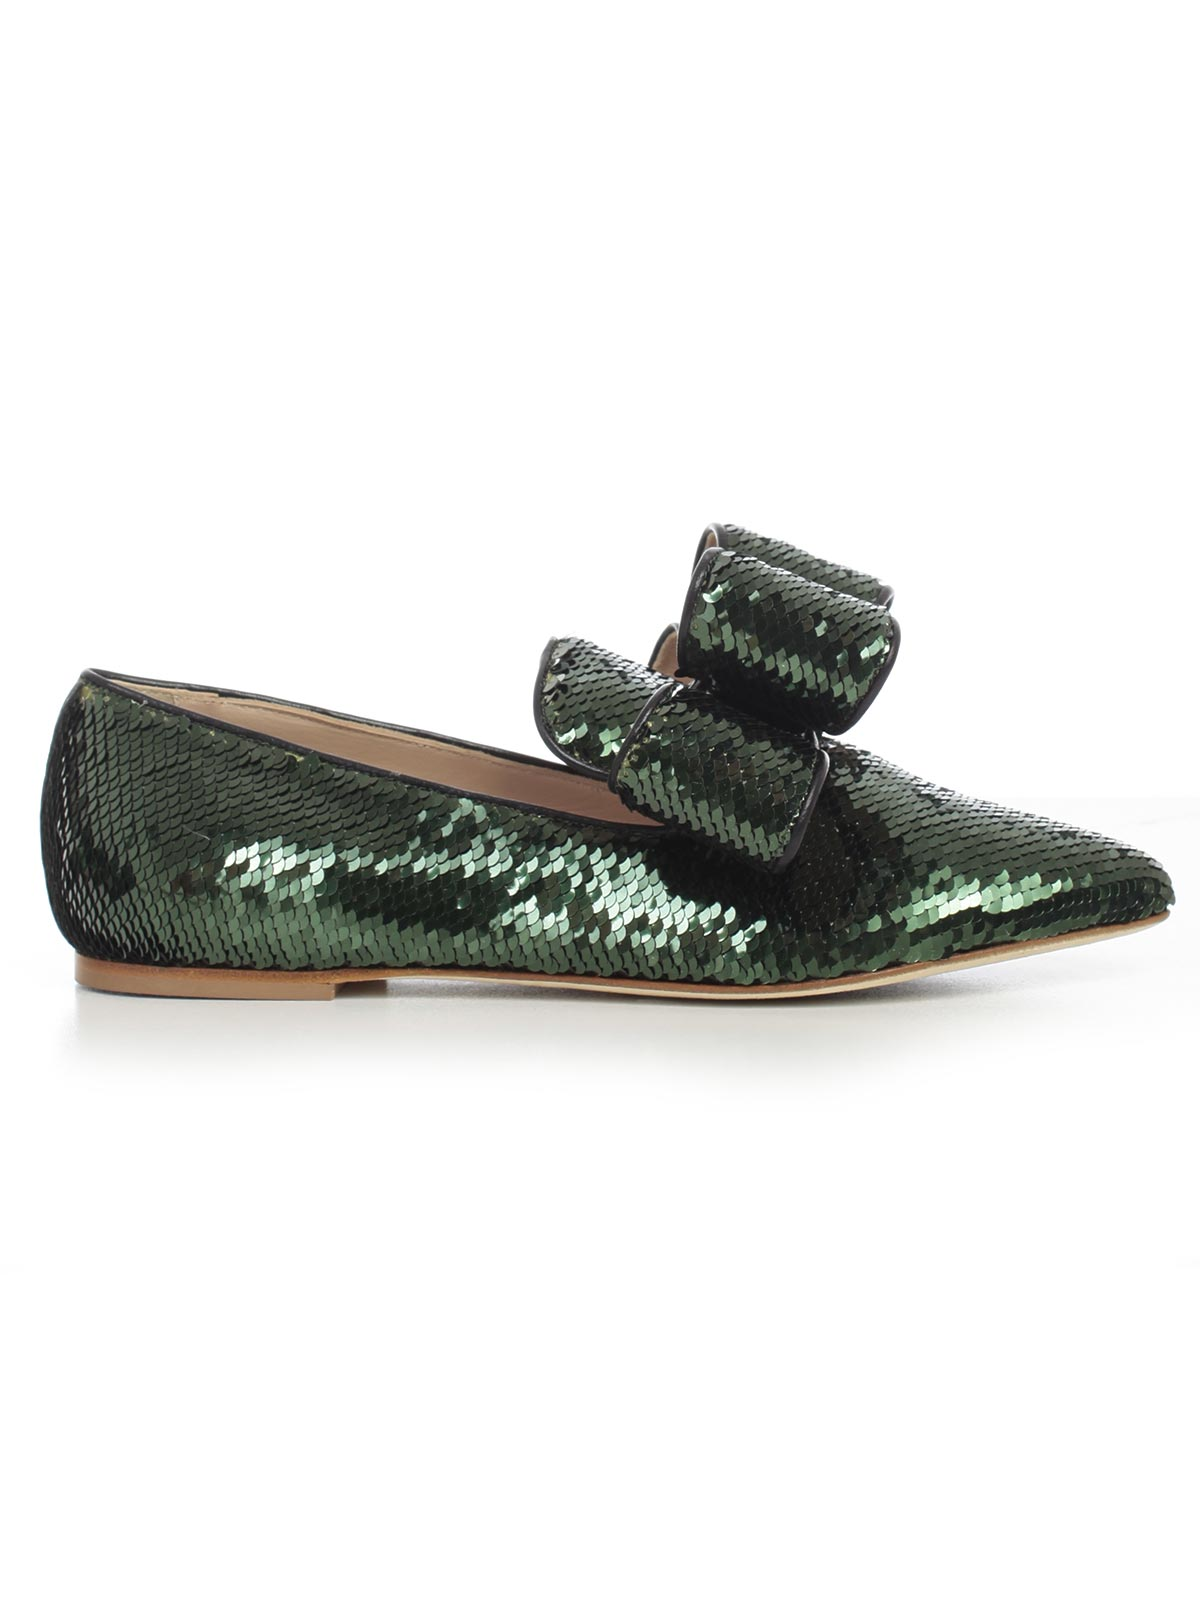 Picture of Polly Plume Loafers